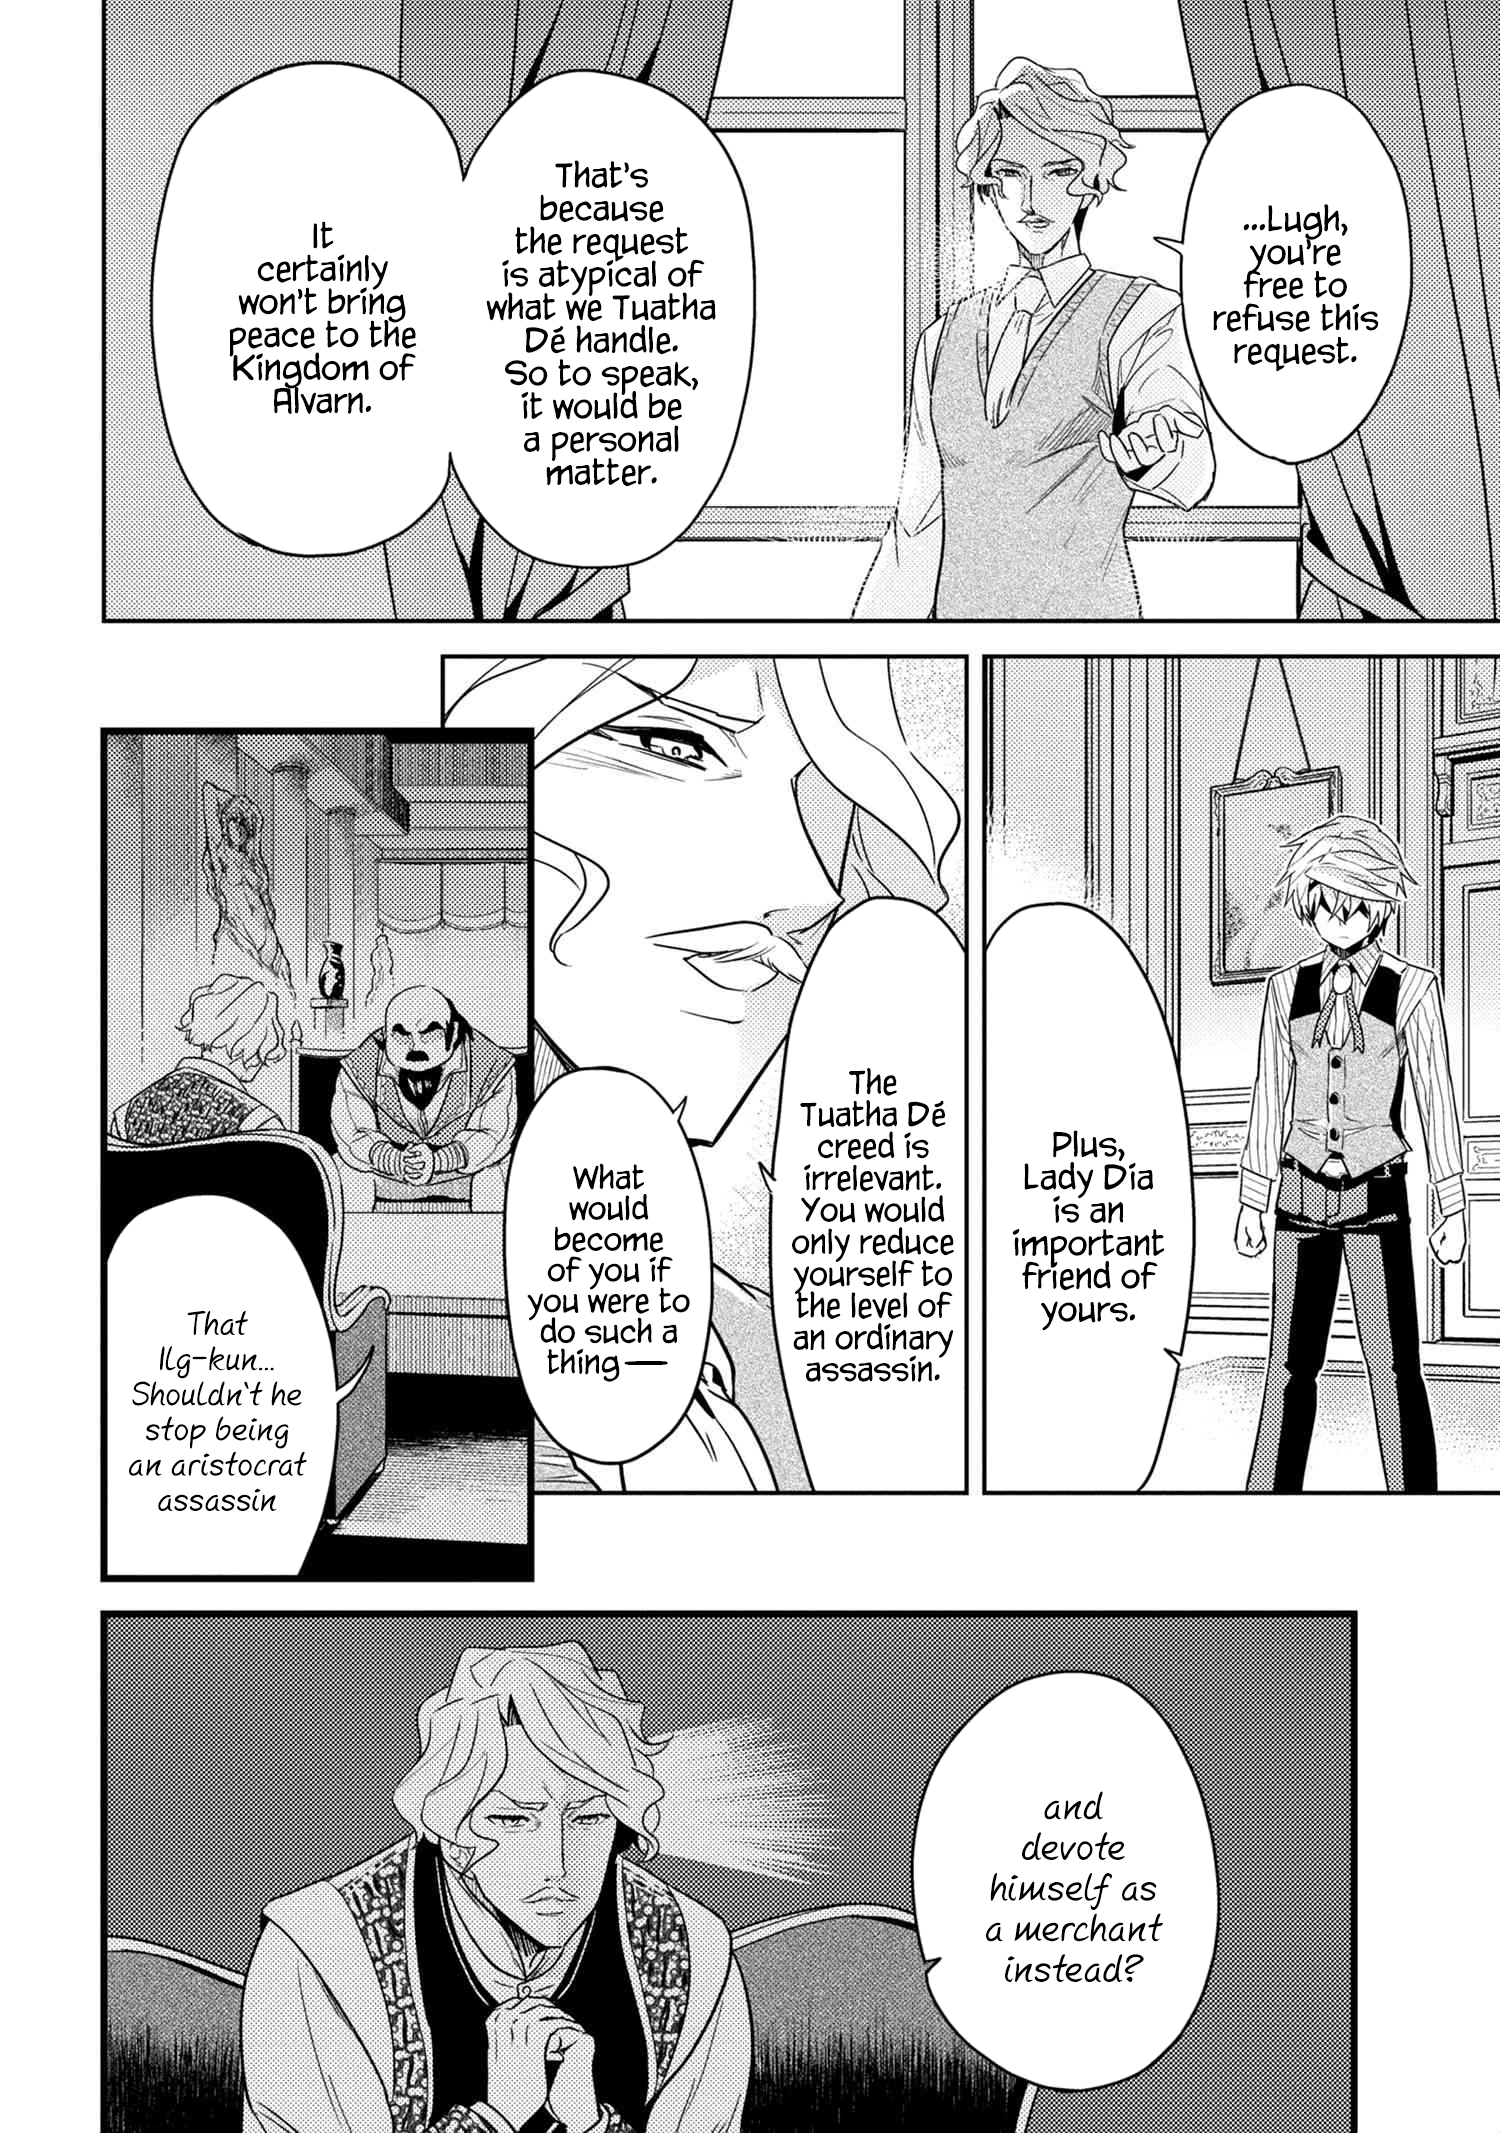 Manga The World's Best Assassin, Reincarnated in a Different World as an Aristocrat - Chapter 7.2 Page 5